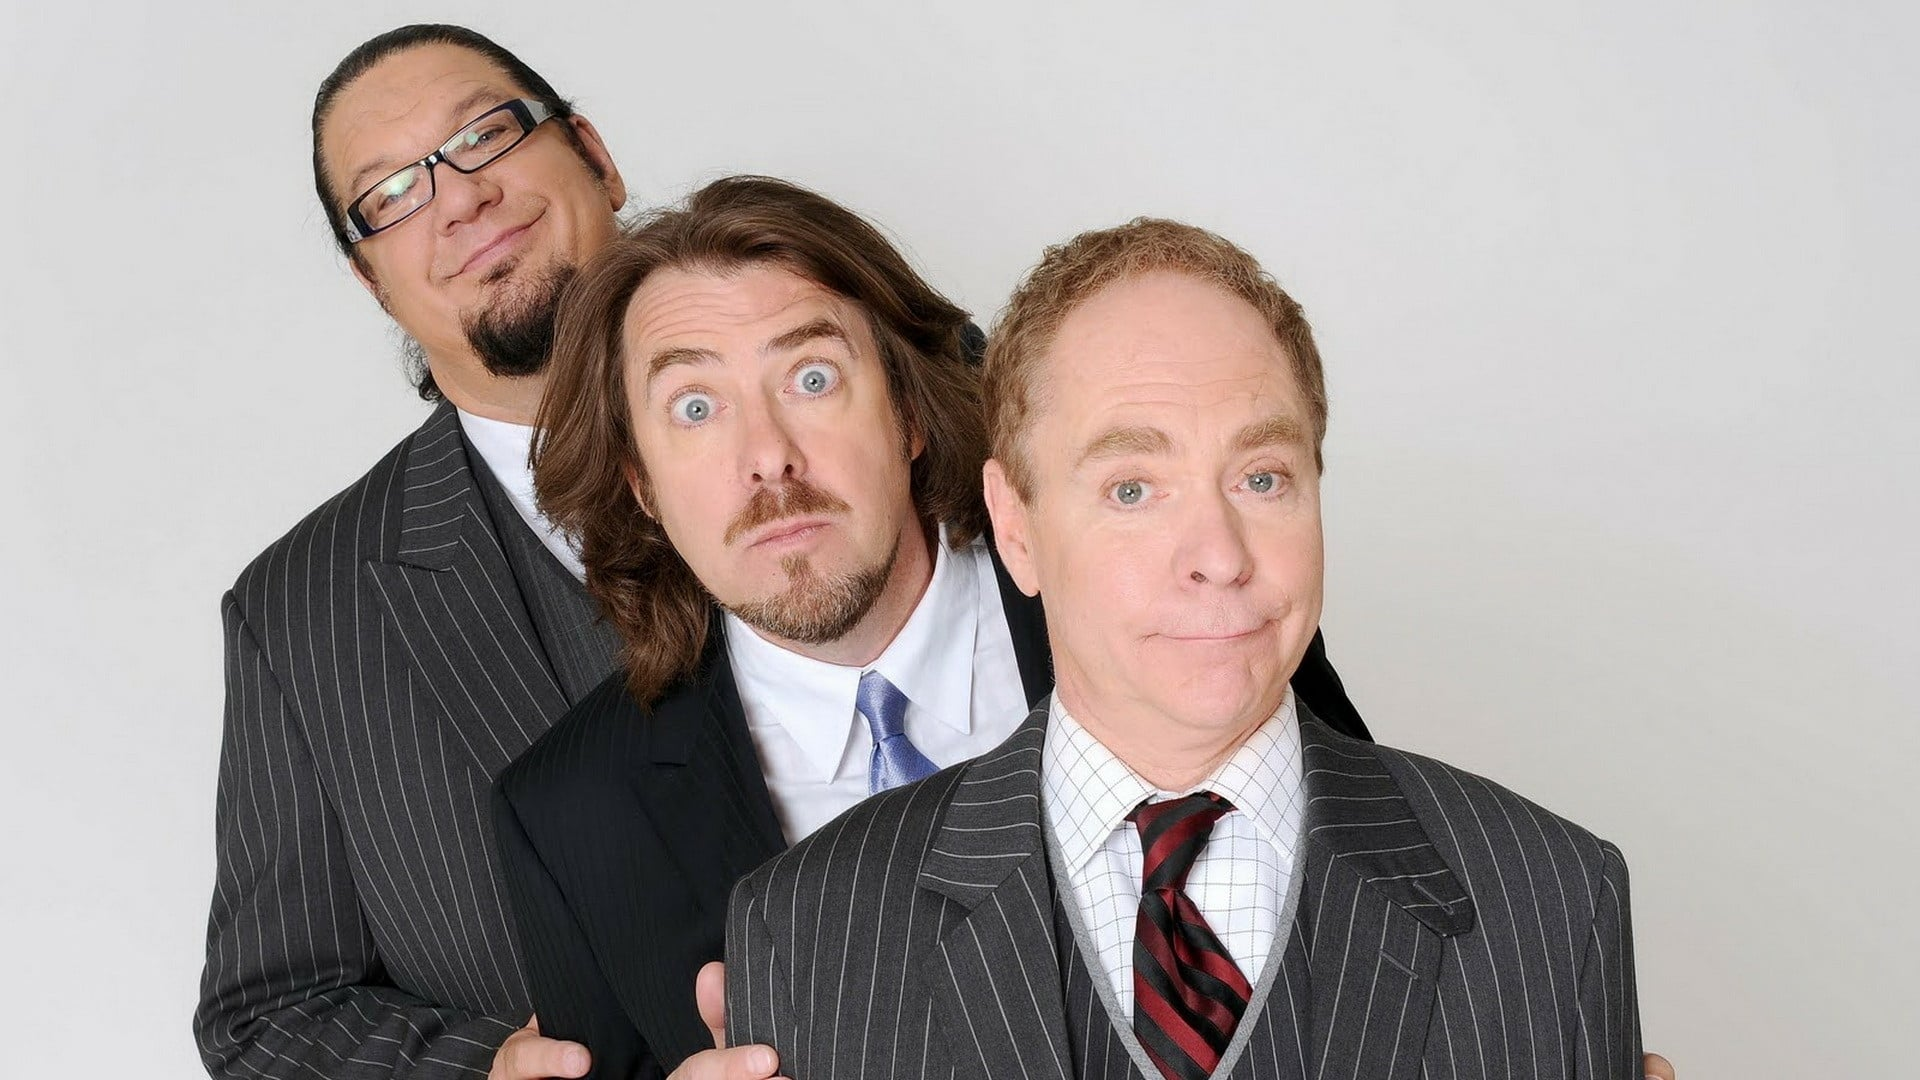 Penn & Teller: Fool Us - Season 5